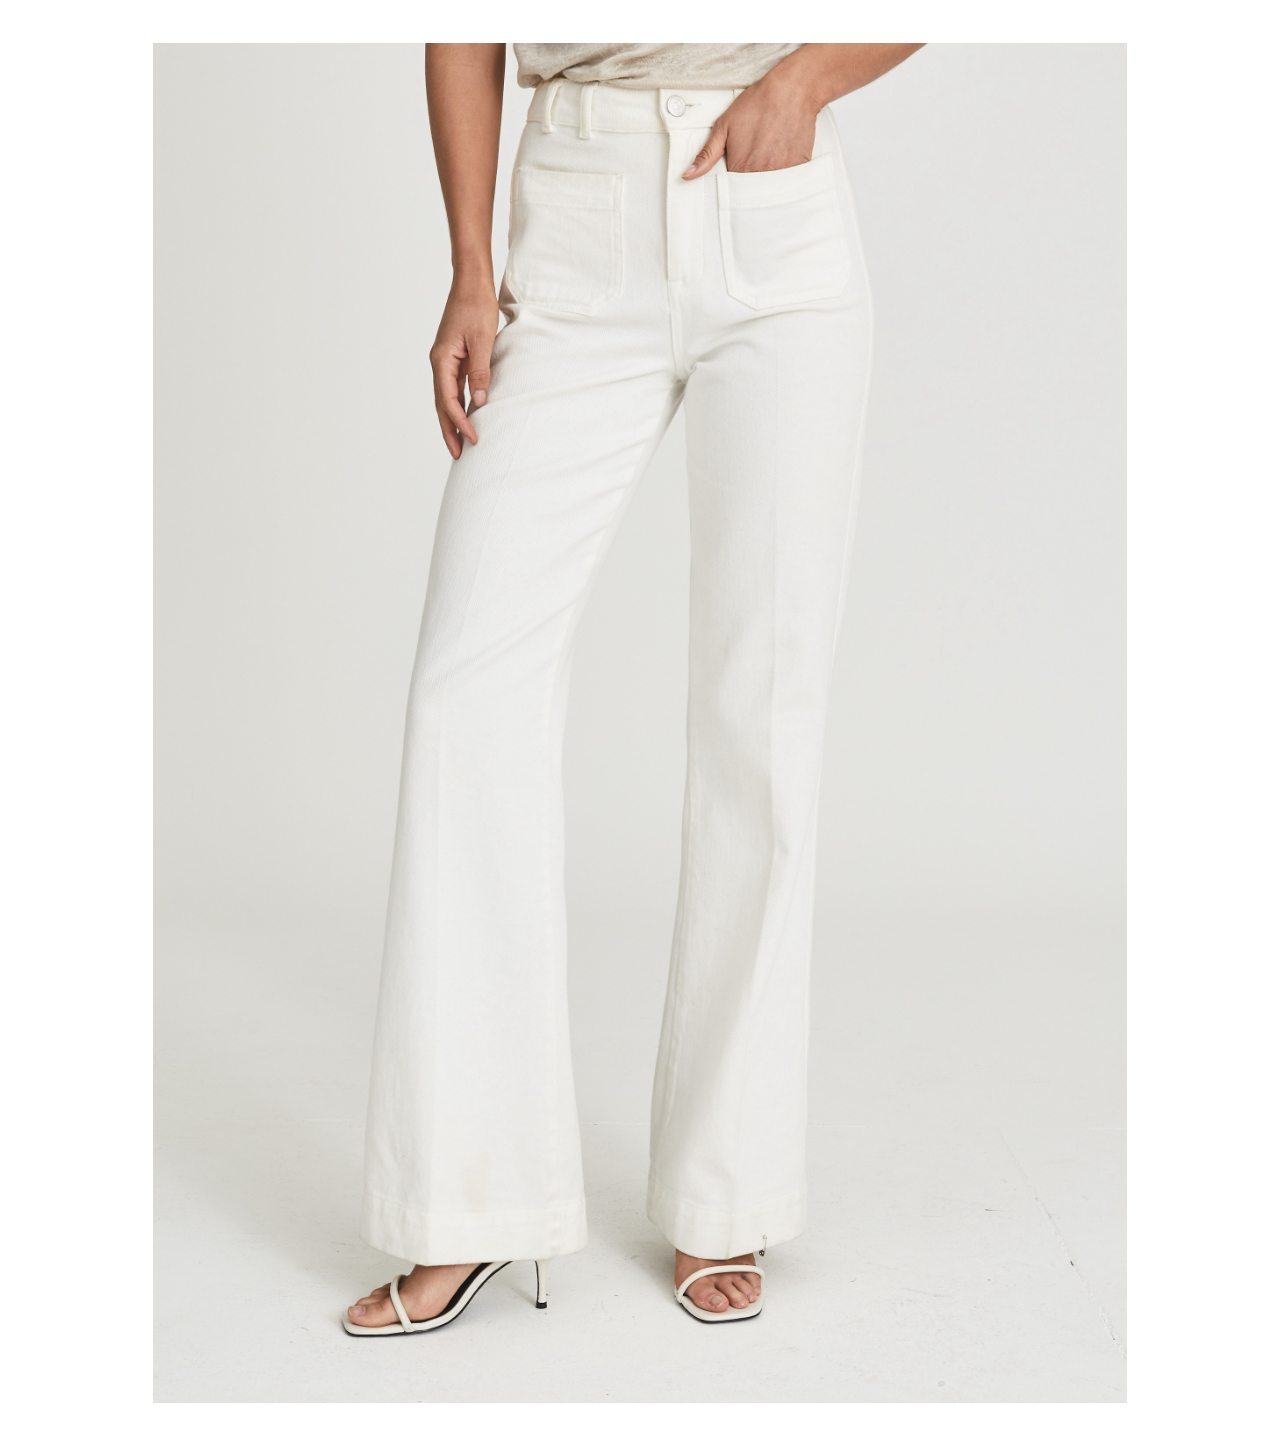 Isa White High Rise Flared Jeans